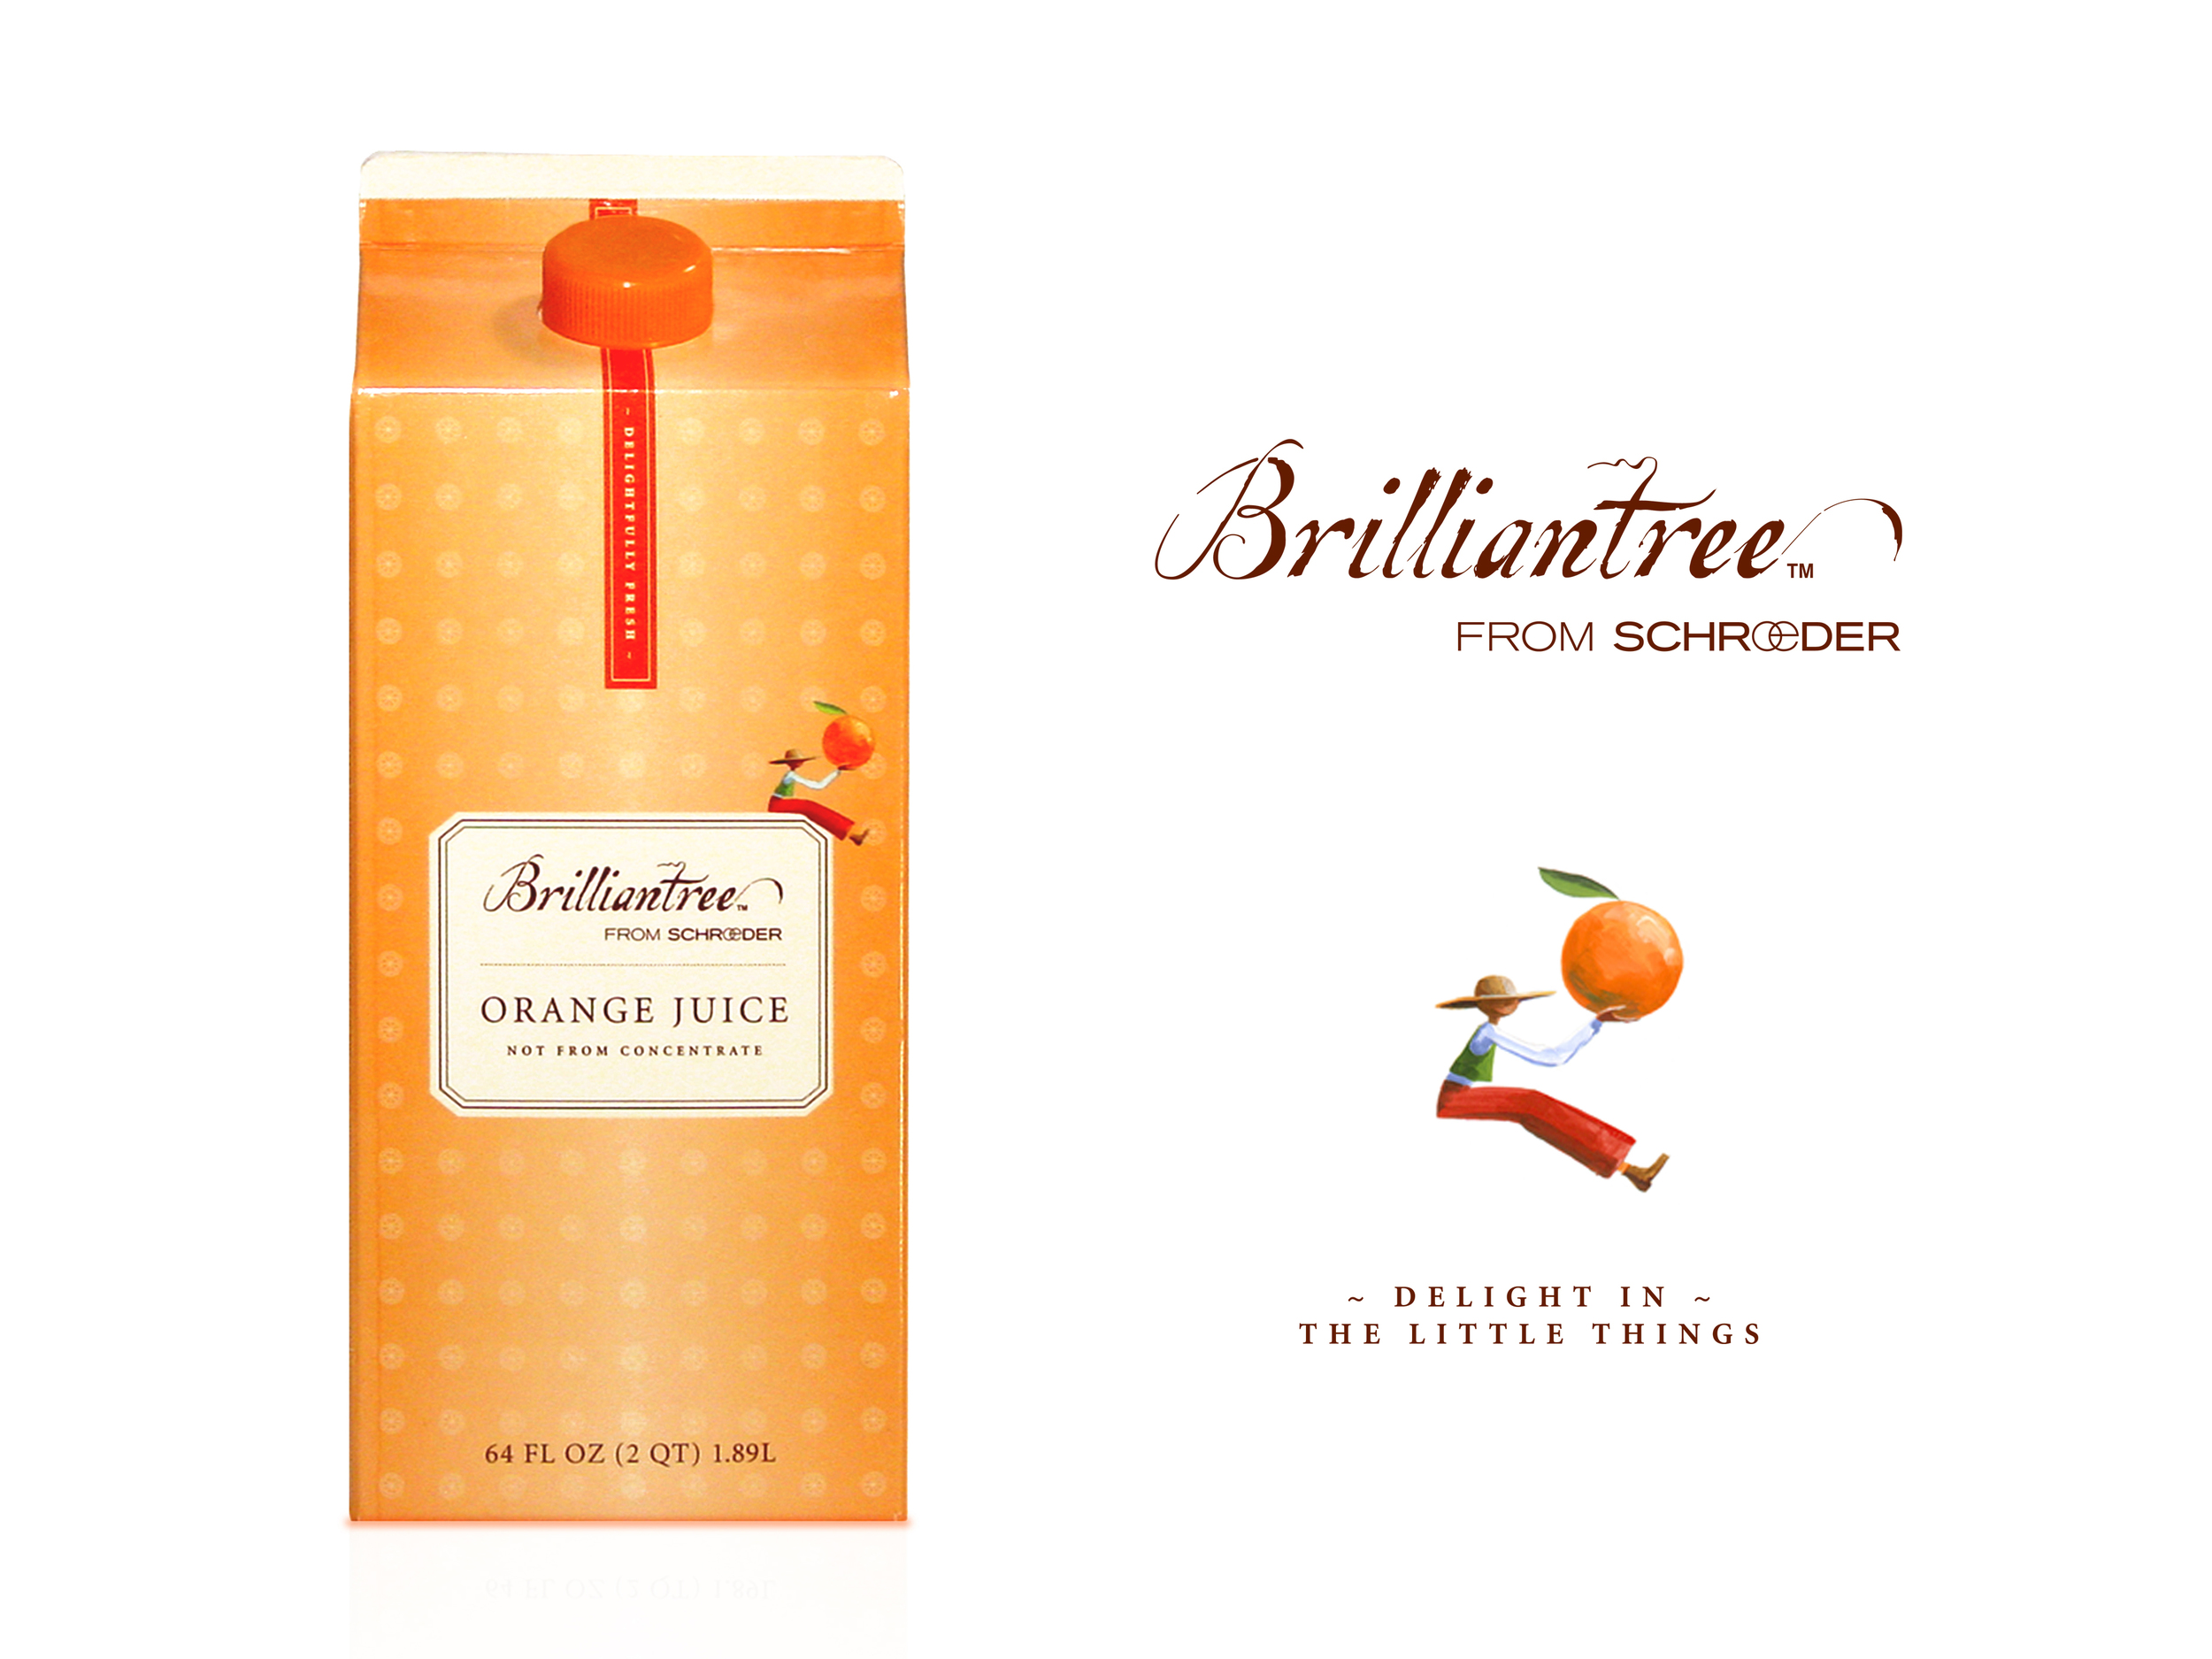 Brilliantree Brand Identity & Packaging